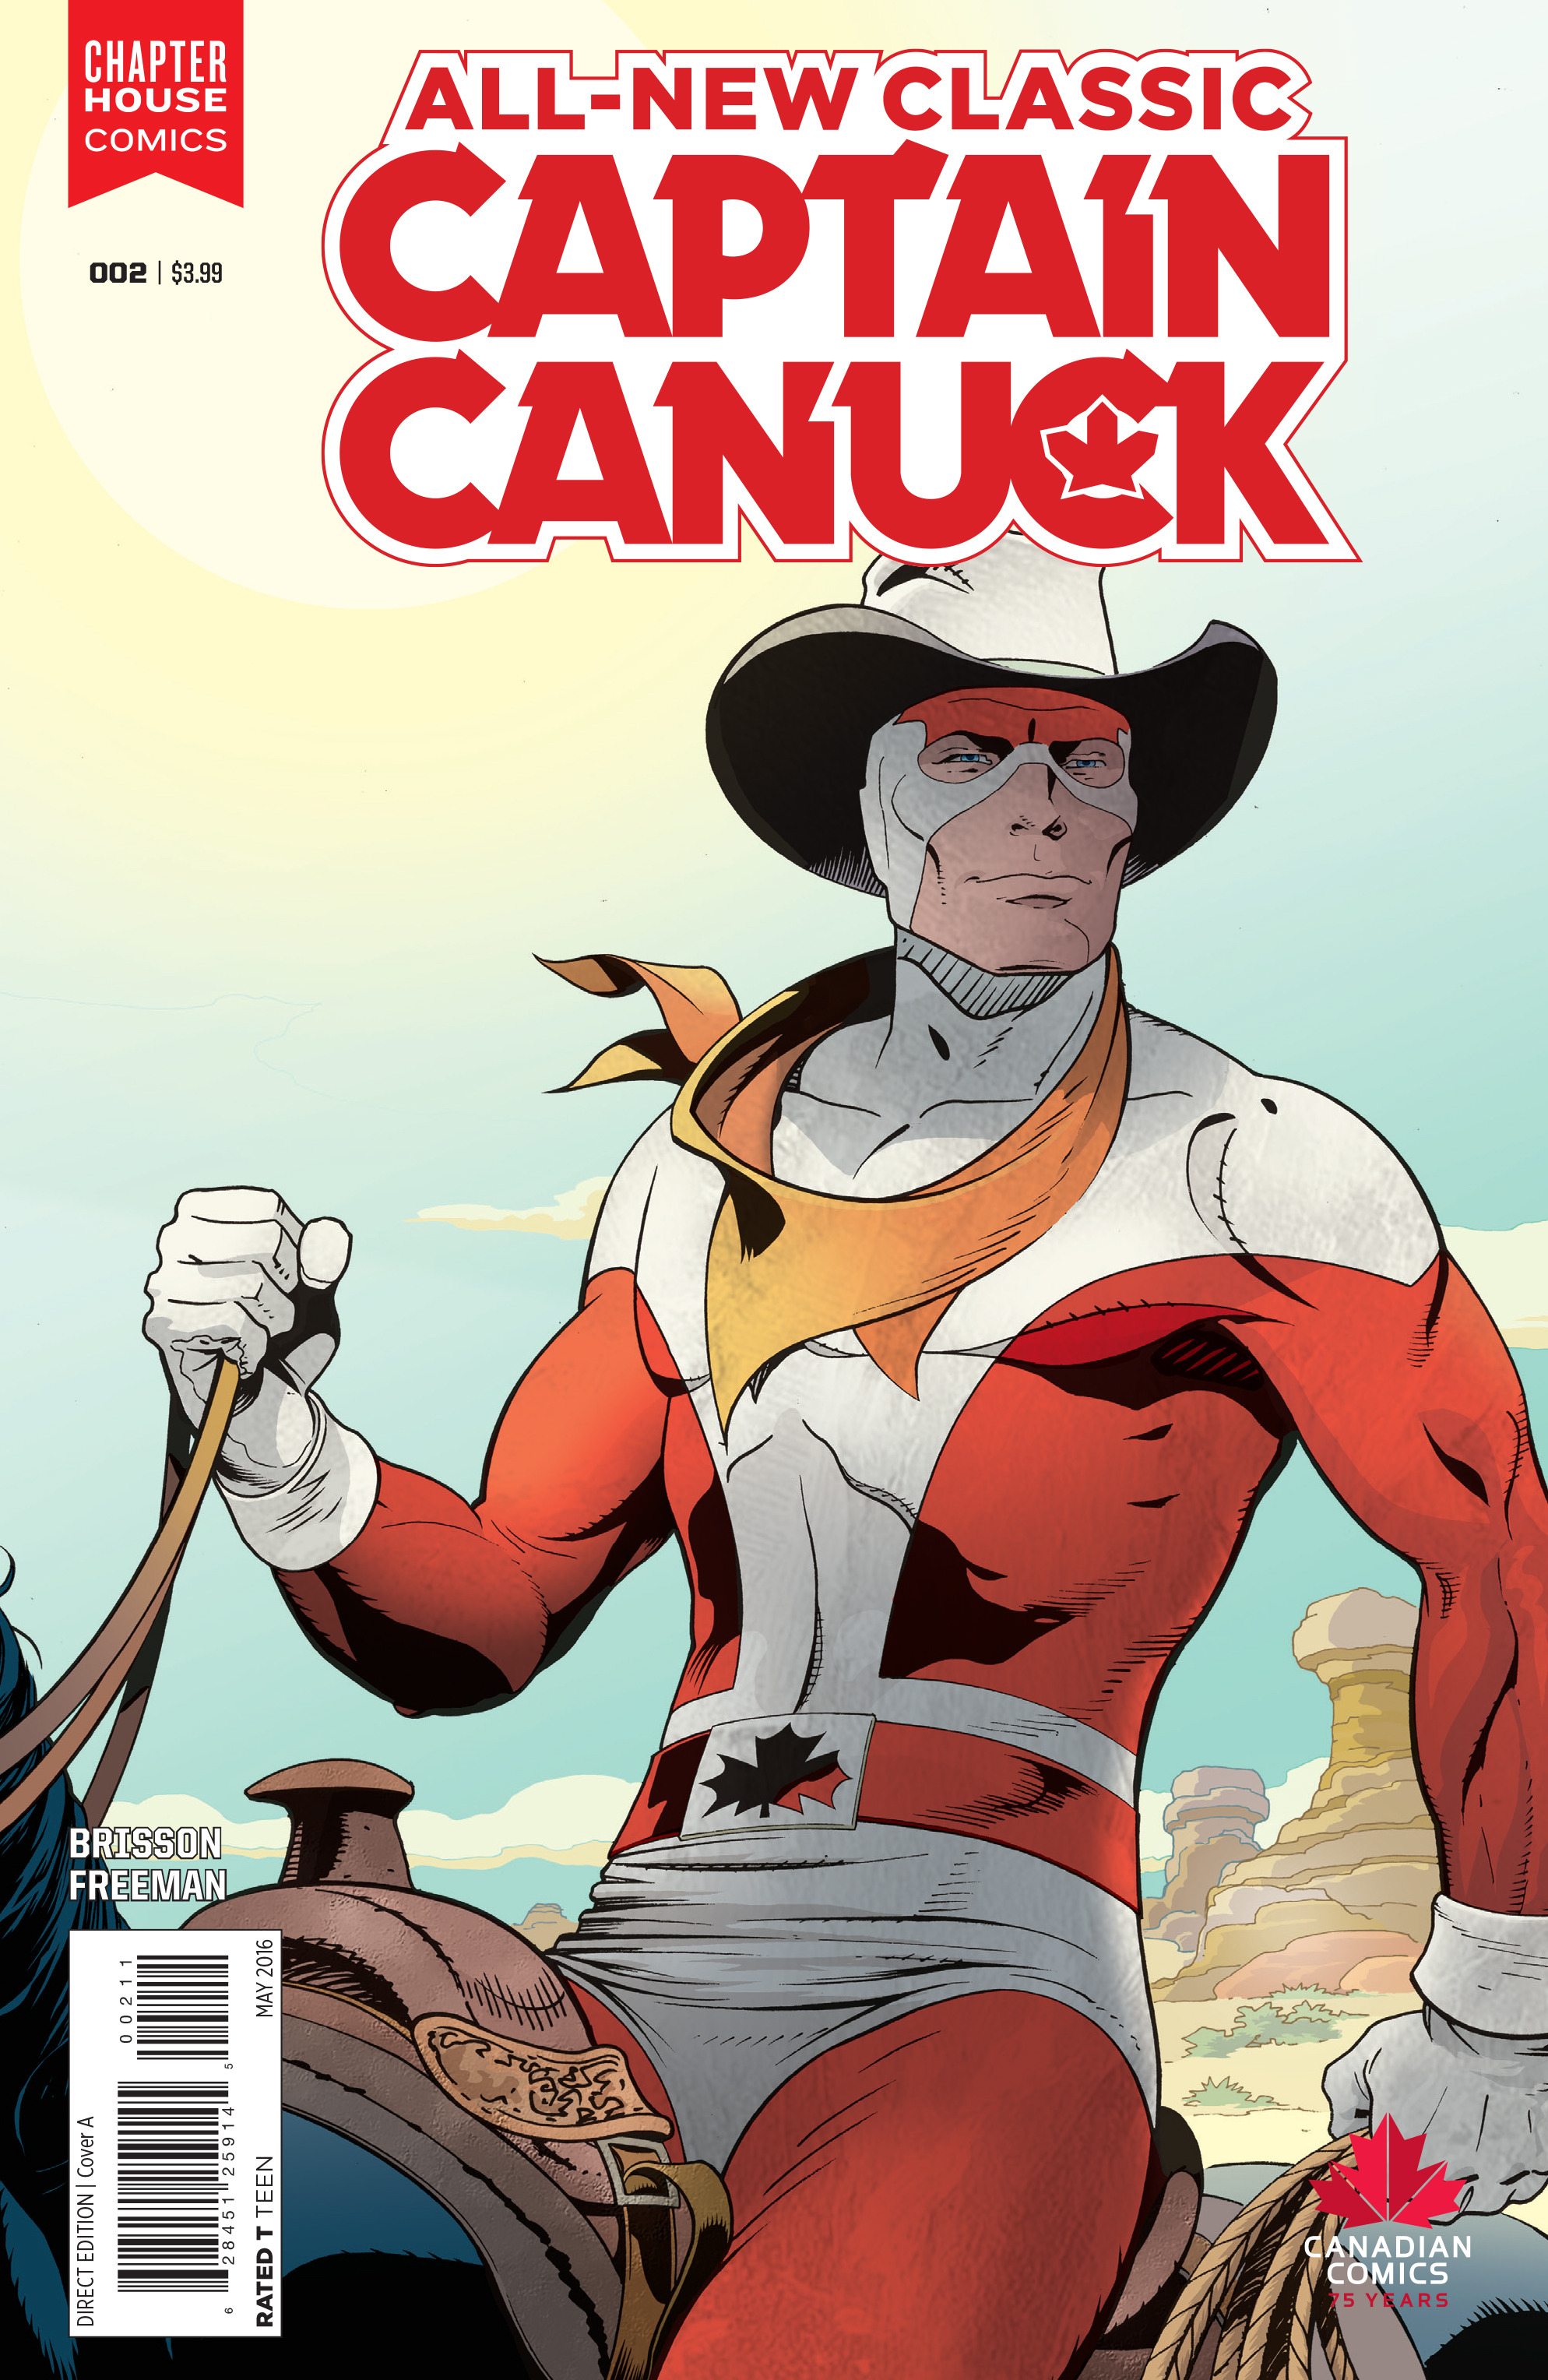 All-New Classic Captain Canuck 2 Page 1